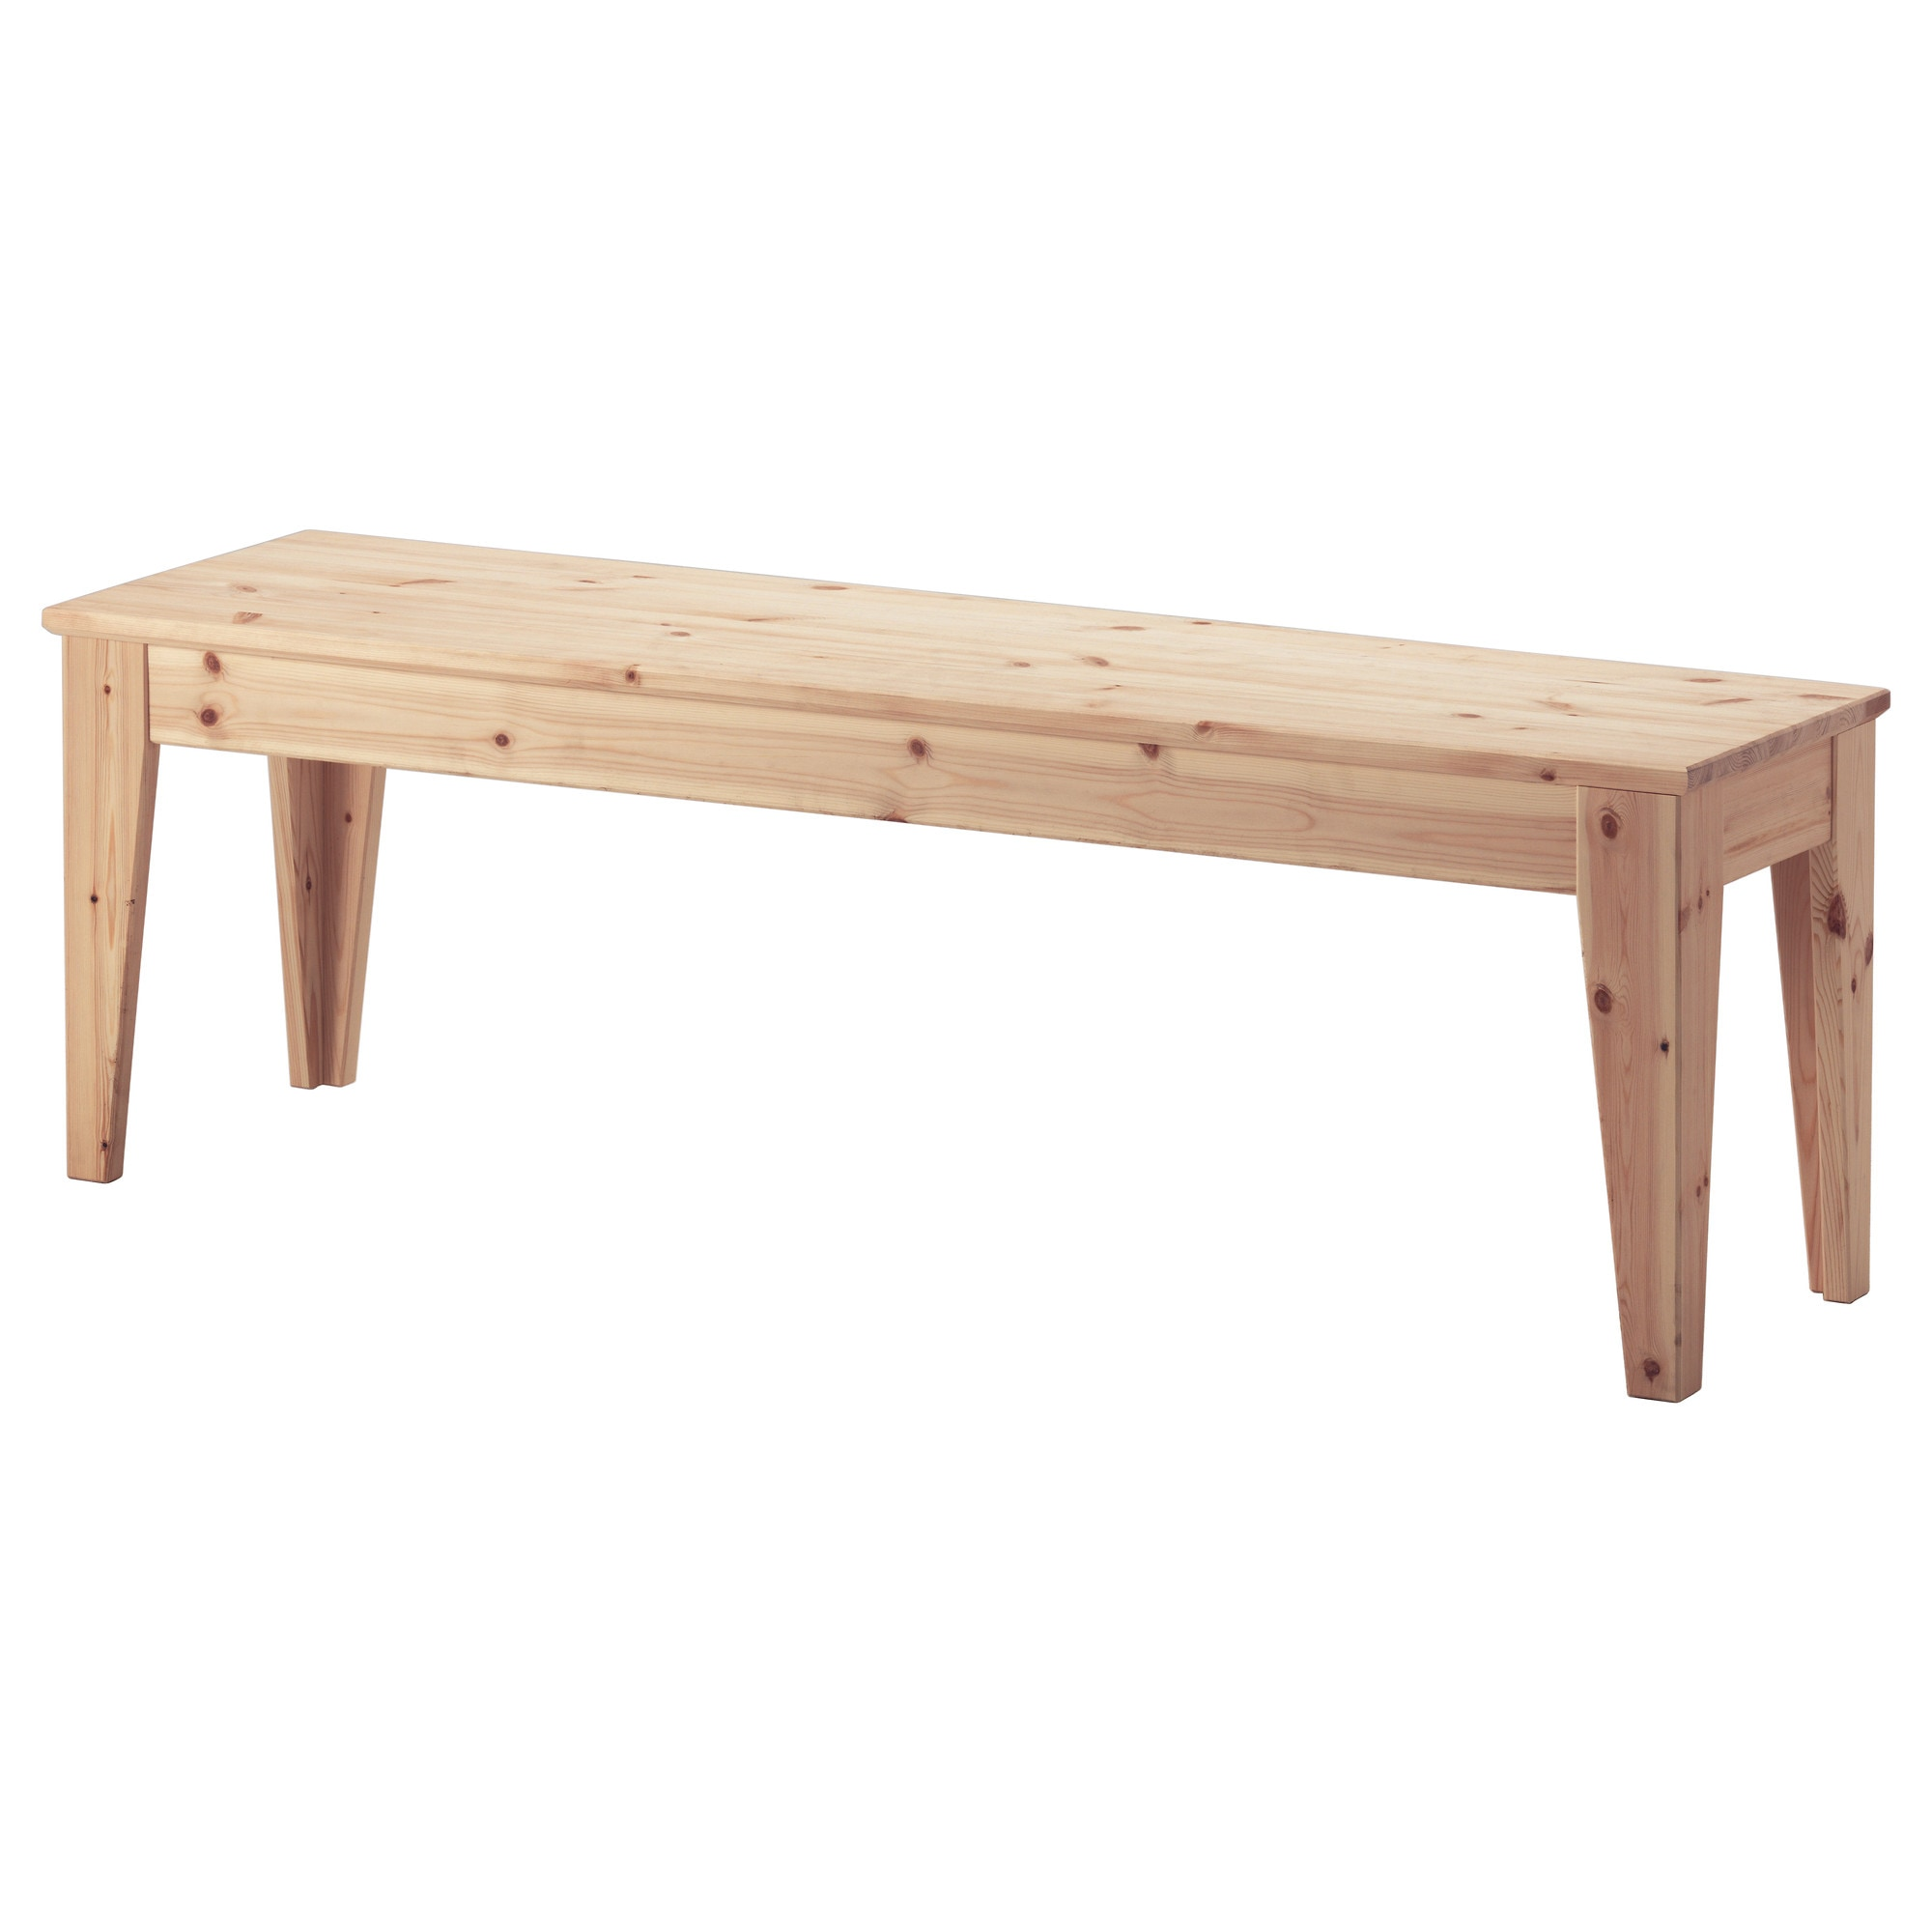 Dining table seattle further pottery barn reclaimed wood coffee table